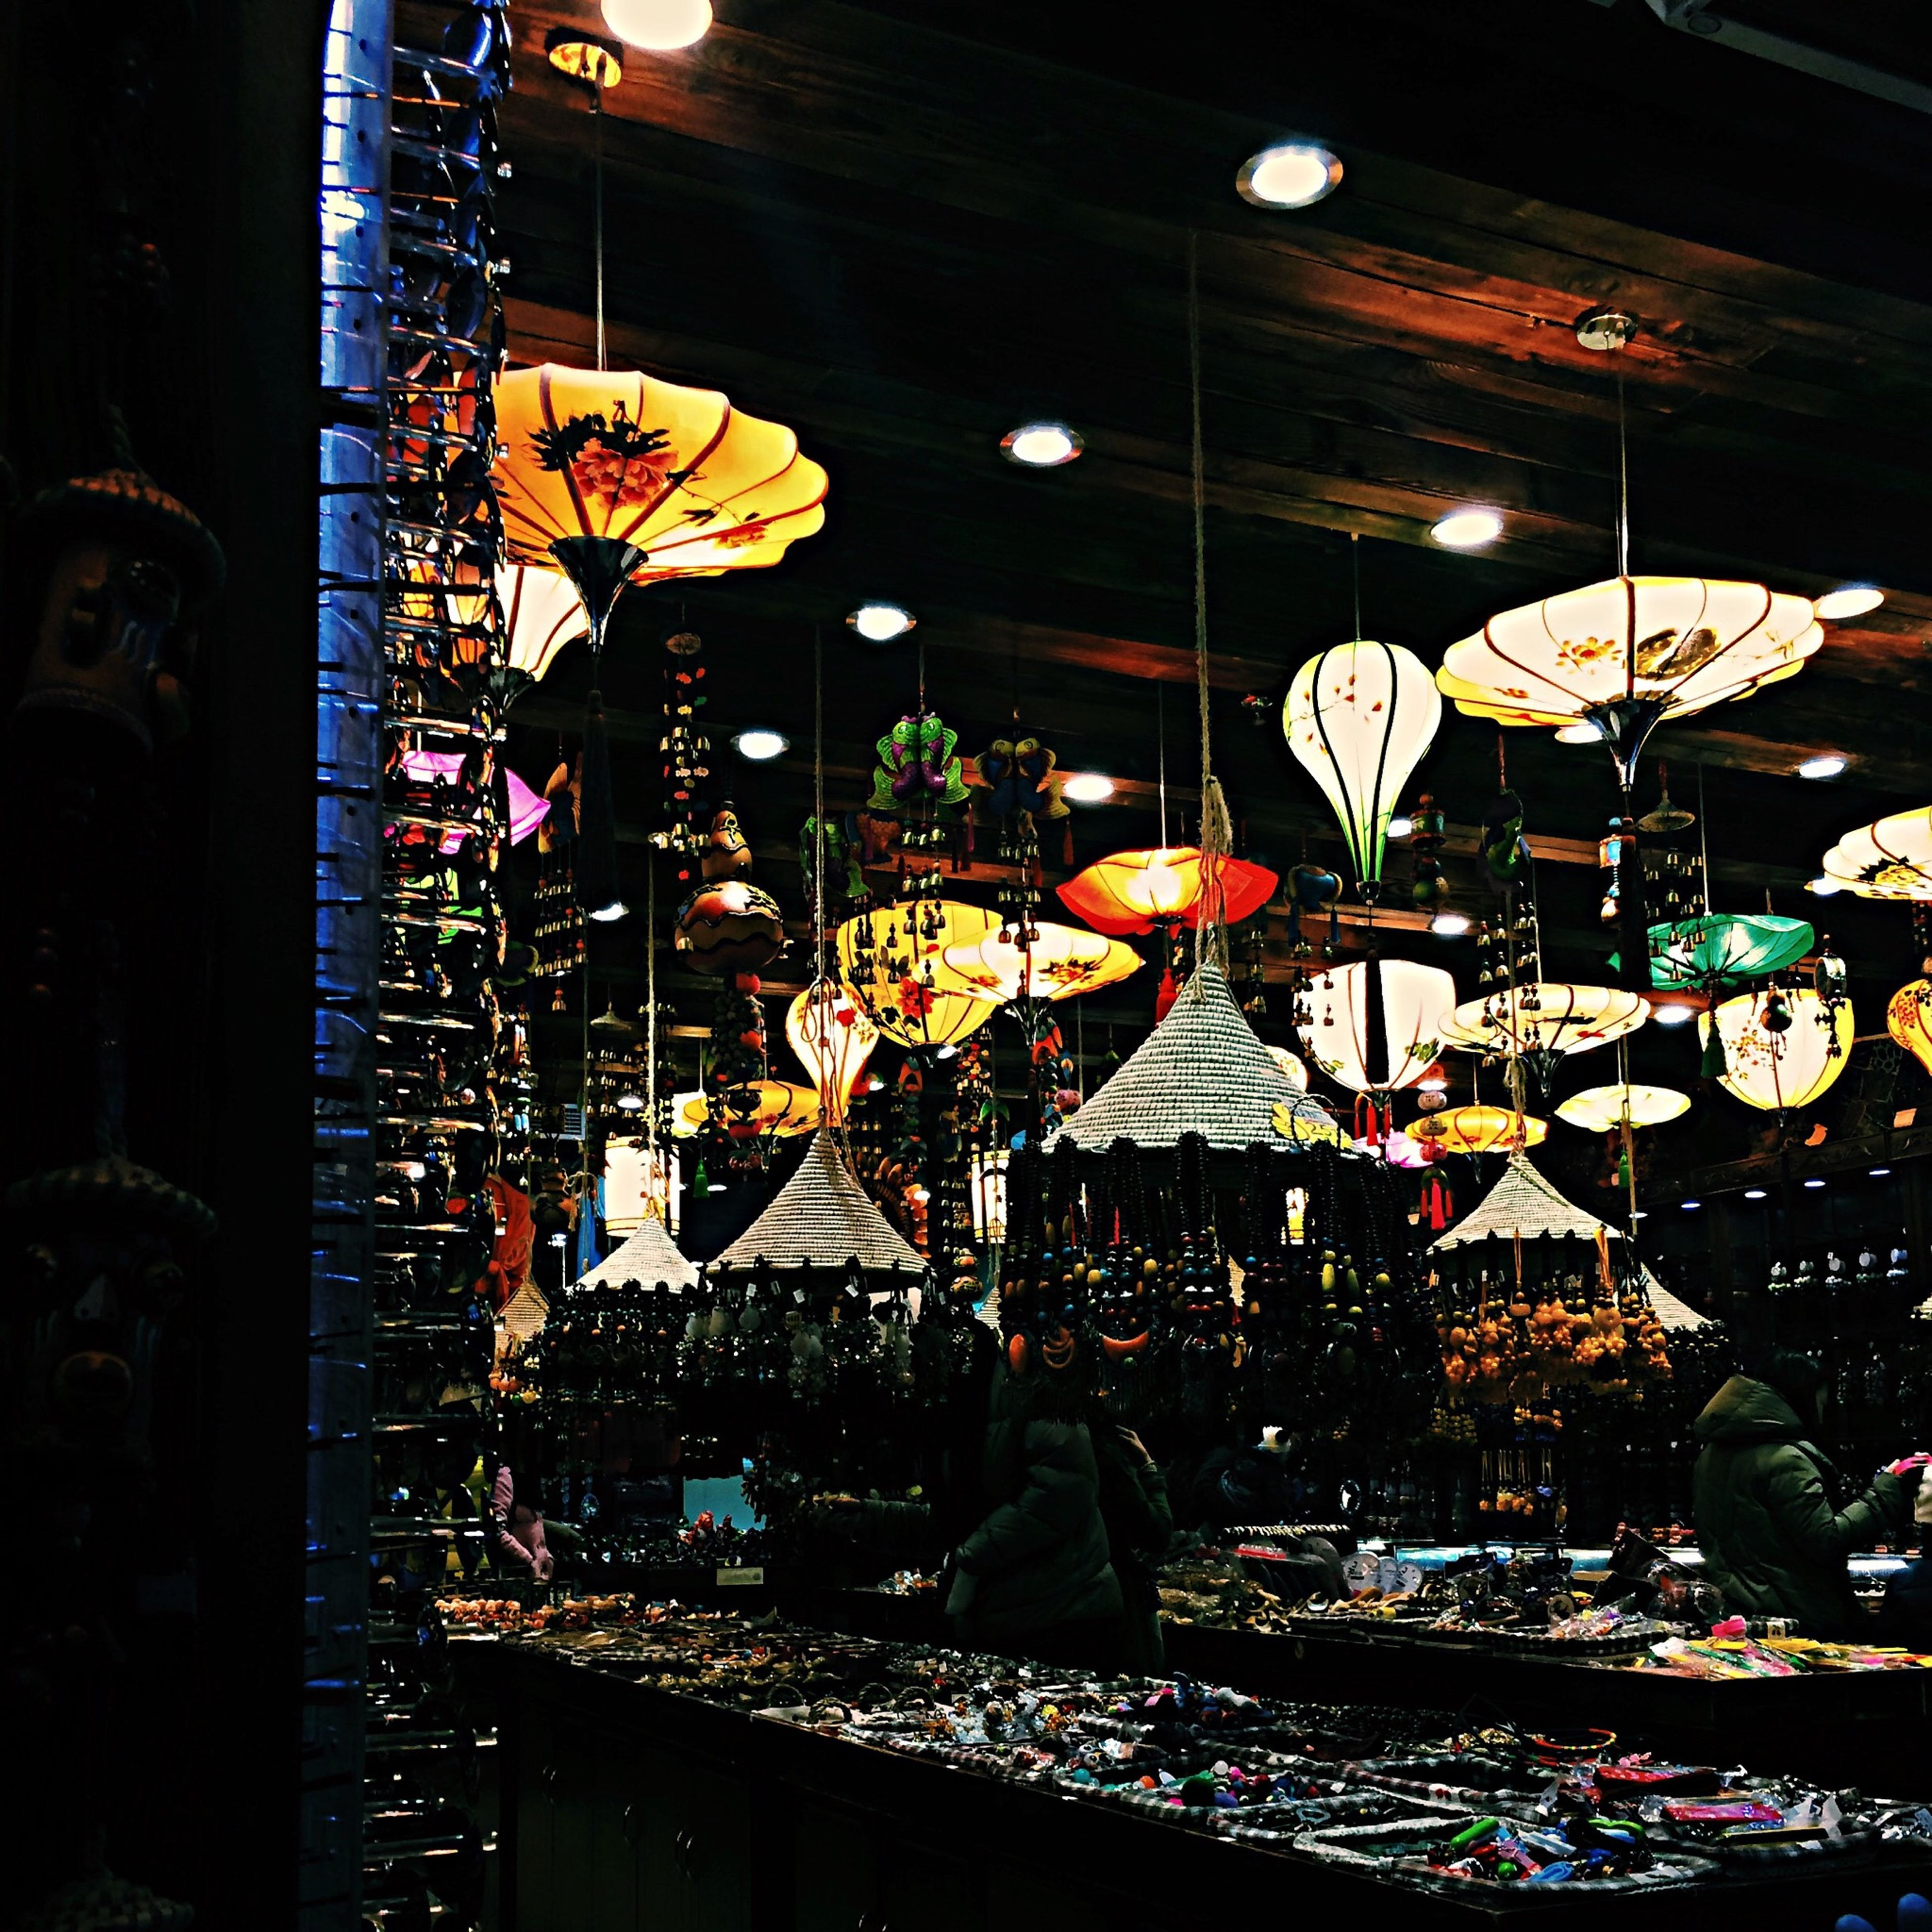 illuminated, night, lighting equipment, decoration, celebration, arts culture and entertainment, multi colored, built structure, hanging, low angle view, architecture, indoors, amusement park, light - natural phenomenon, tradition, building exterior, lantern, christmas decoration, christmas, amusement park ride